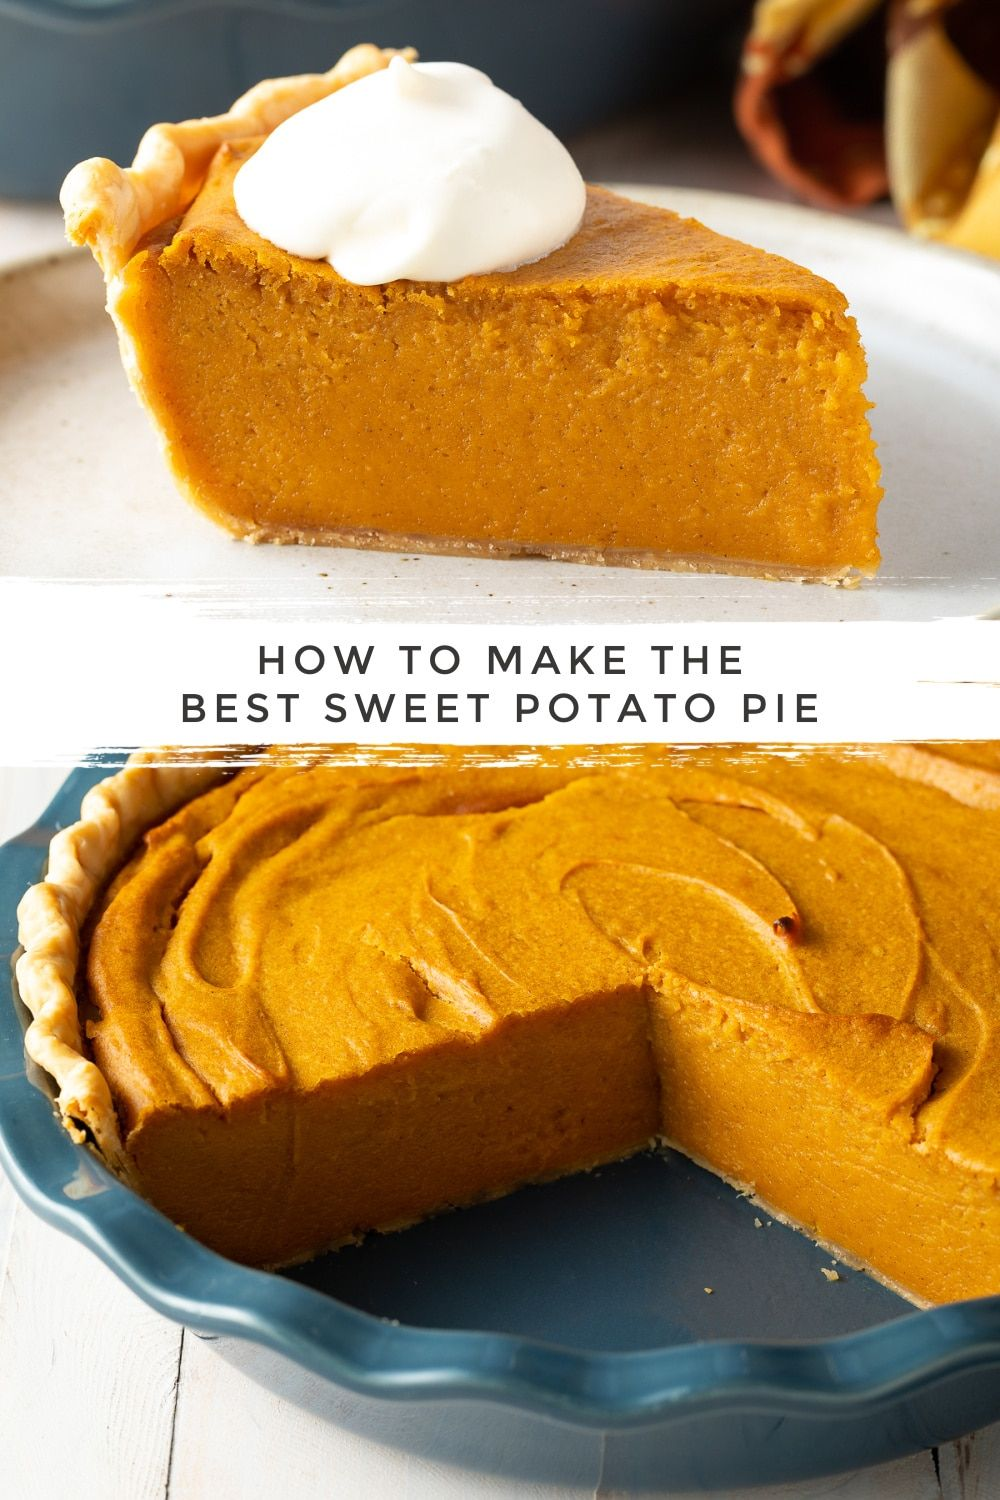 The Best Sweet Potato Pie Recipe (VIDEO) - A Spicy Perspective